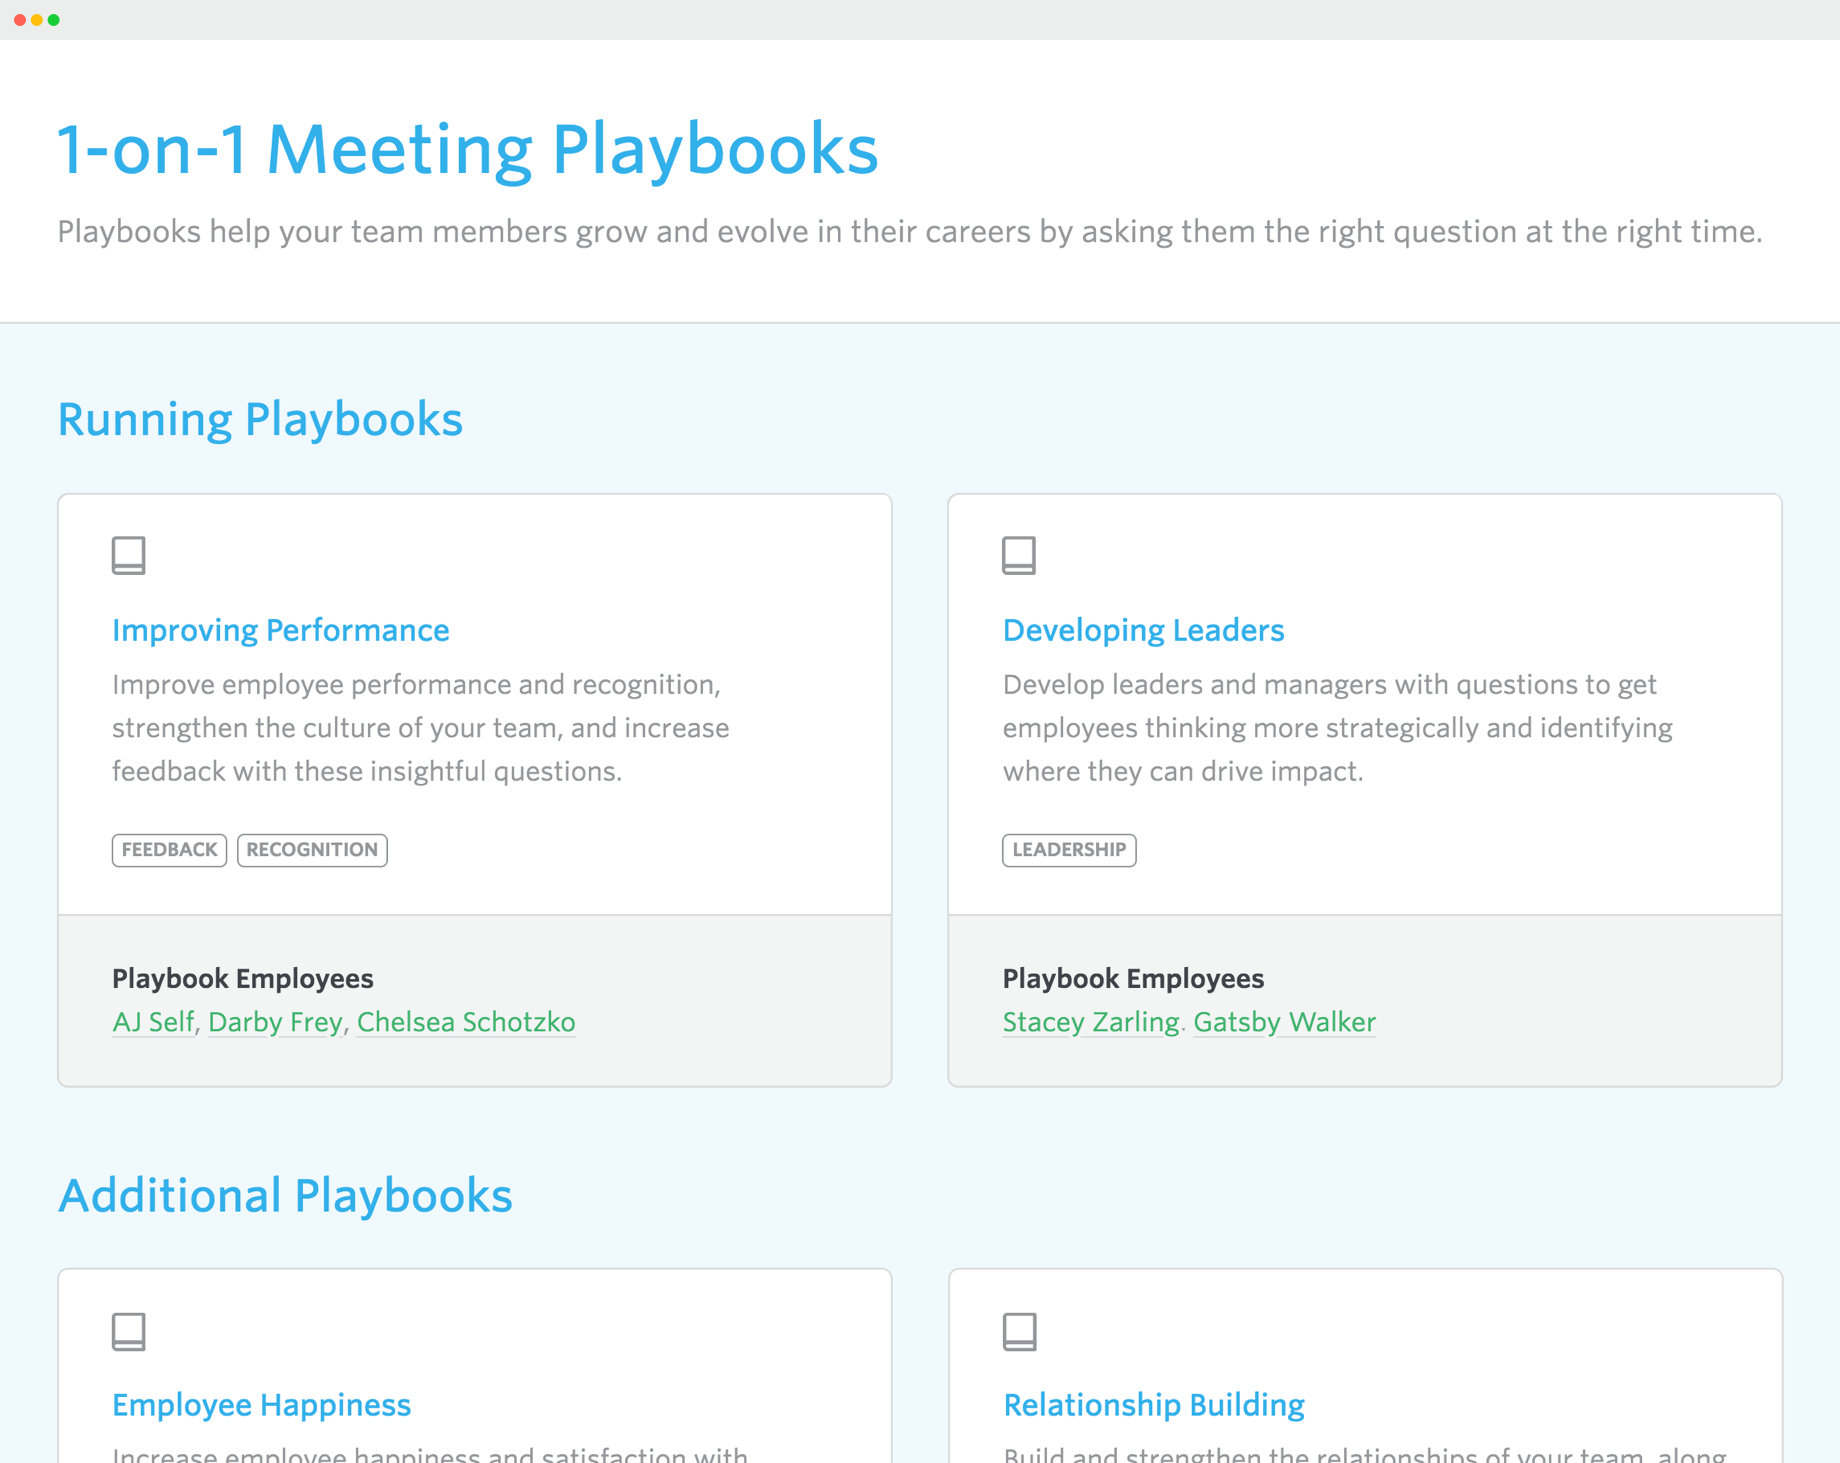 Lead Honestly Playbook dashboard topics